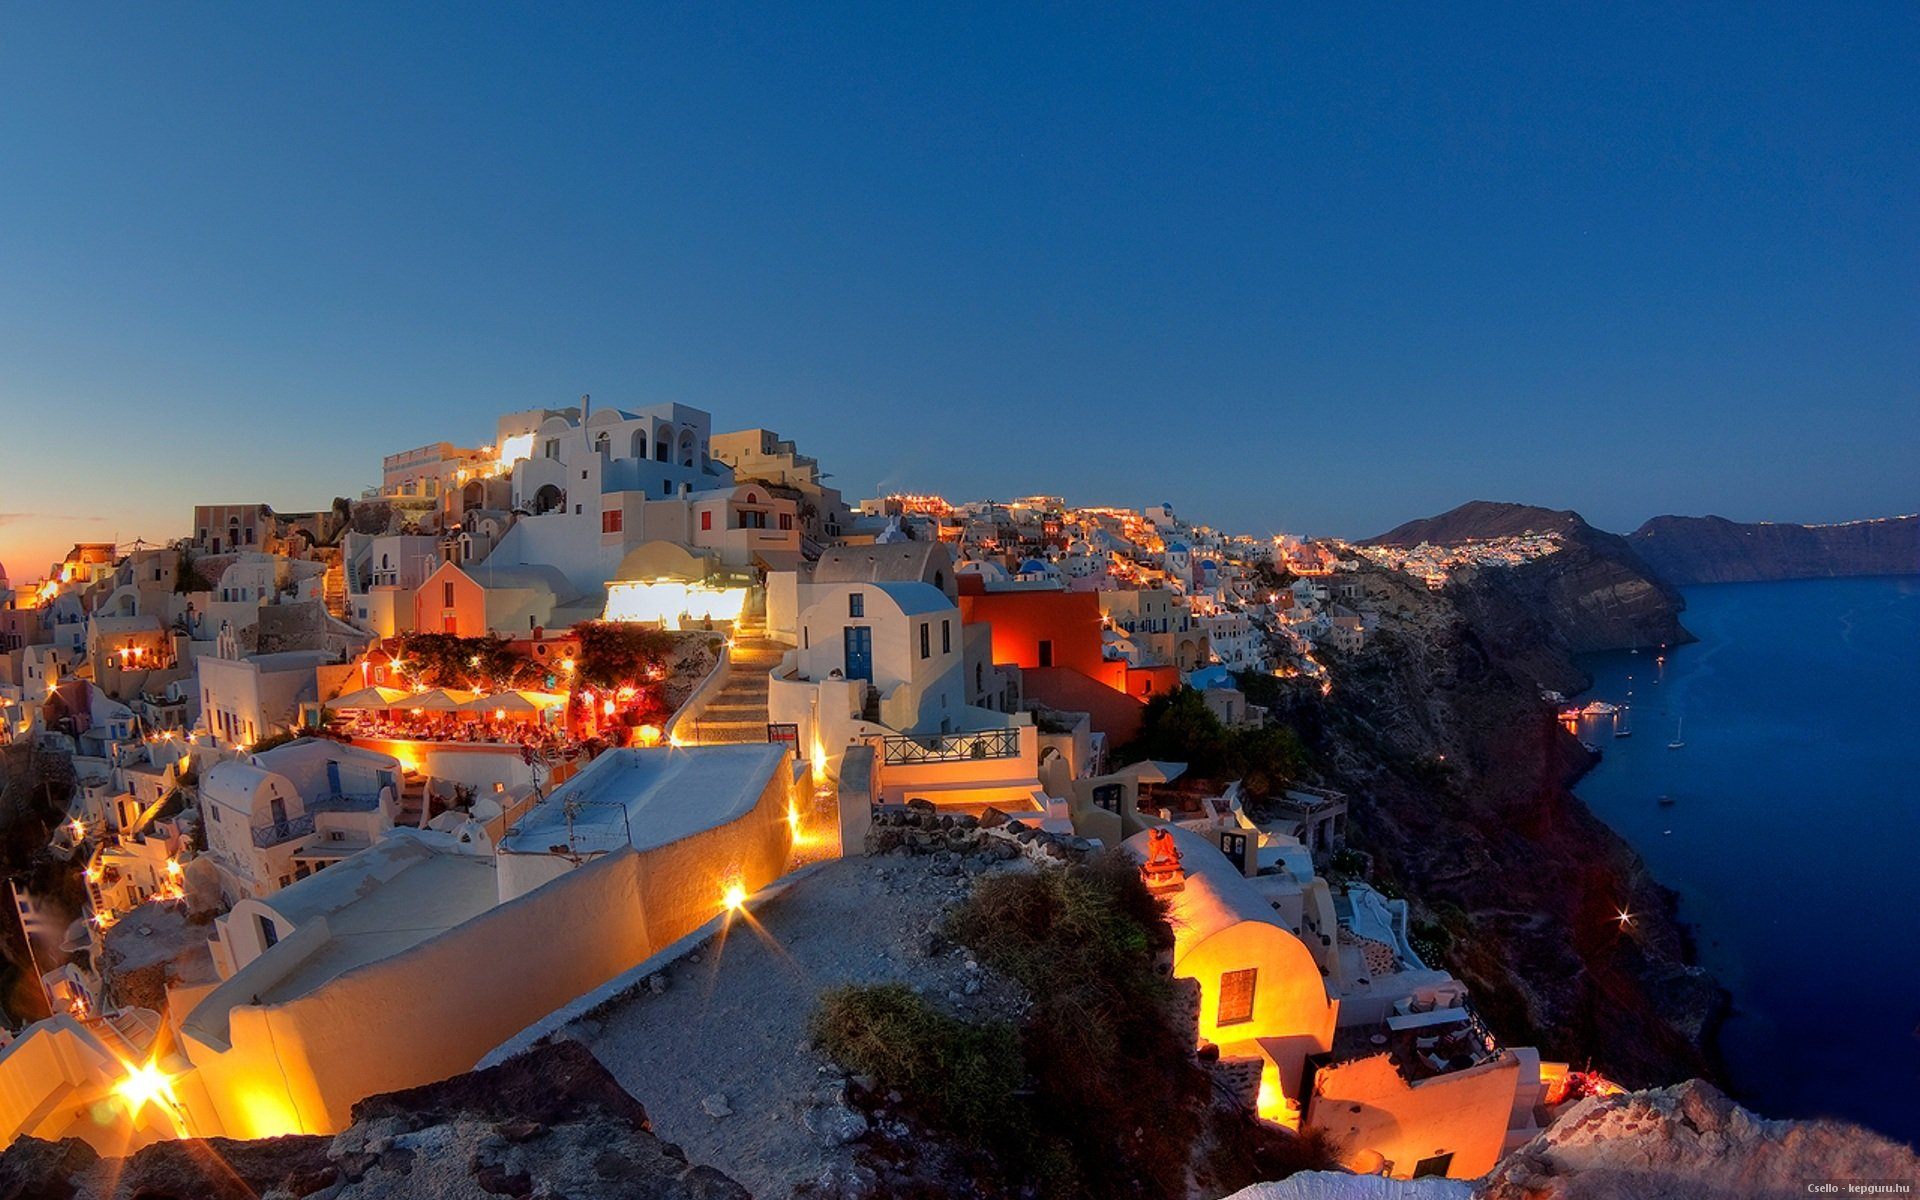 Santorini Wallpaper Night HD Wallpaper Background Images 1920x1200